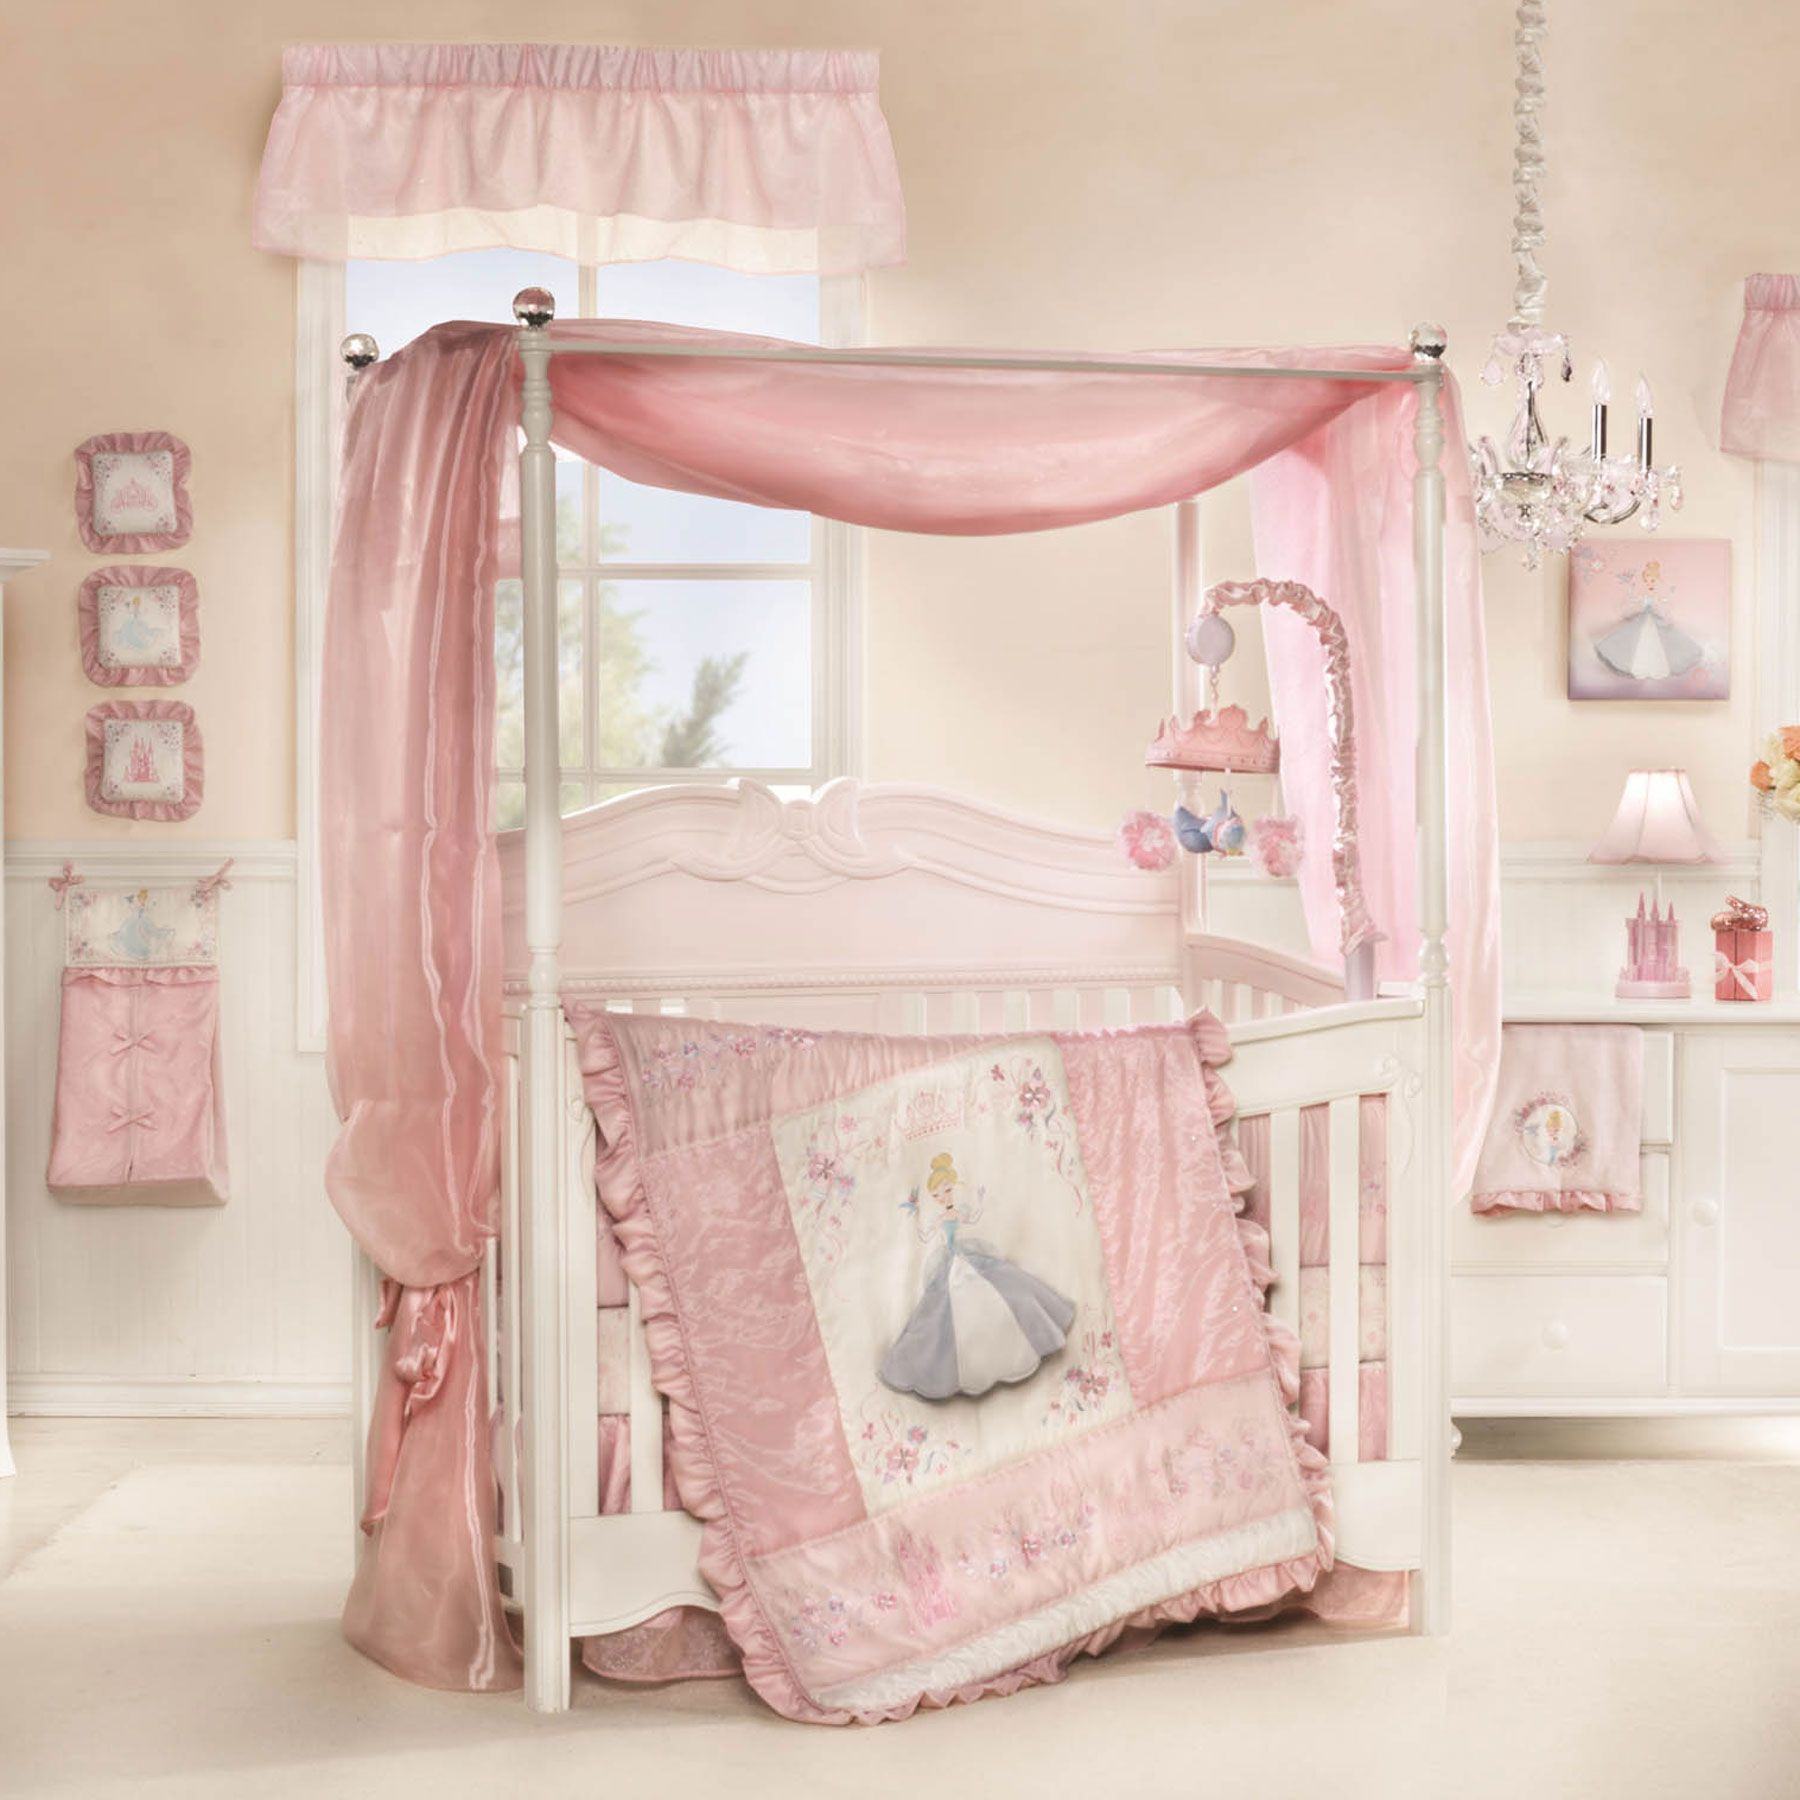 Princess Crib Bedding Love This But Would Want A Different